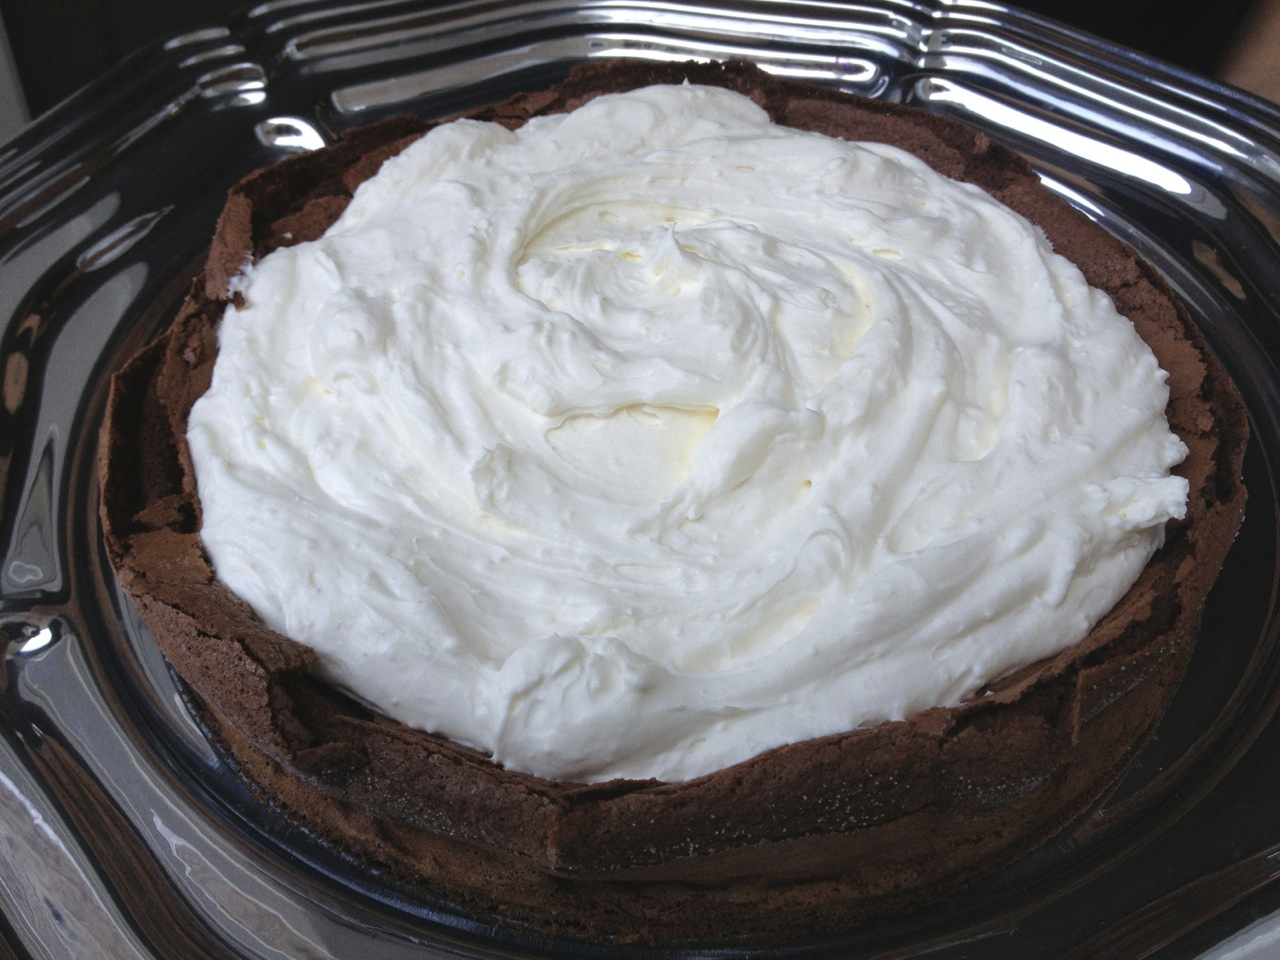 Flourless Chocolate Cake with Mascarpone (photo by Yvonne Condes)